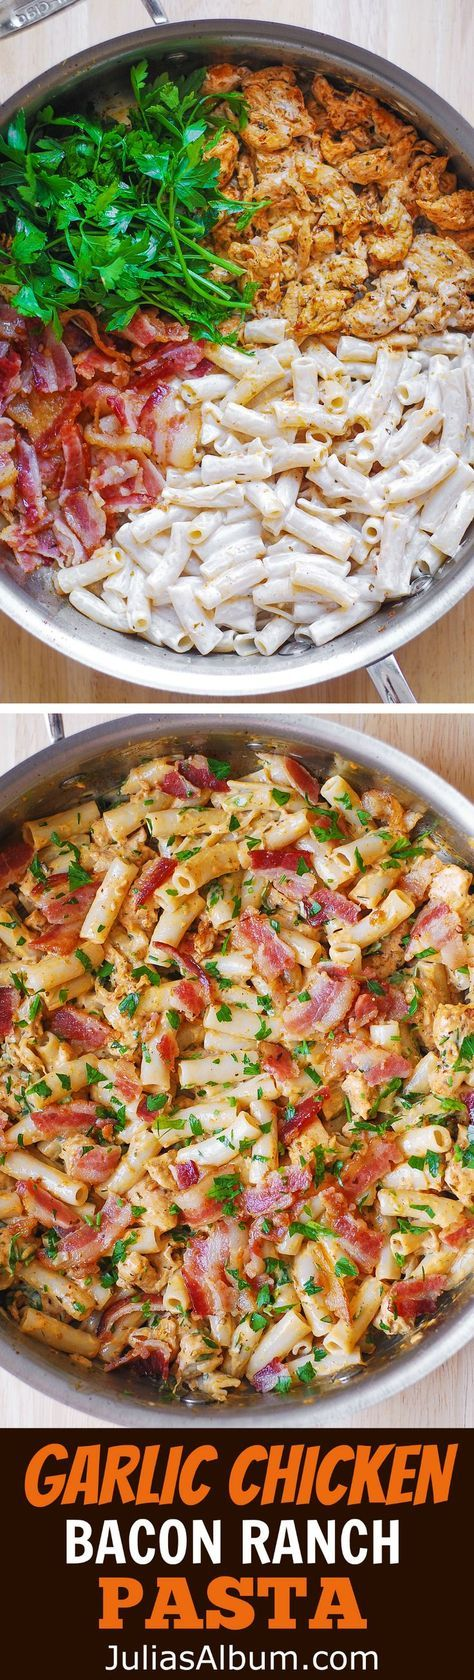 Garlic Chicken, Bacon, and Ranch Pasta - easy, comfort food dinner recipe. Chicken cooked in olive oil, with garlic, paprika, chili powder, and Italian seasoning, then combined with bacon, Ranch dressing and pasta